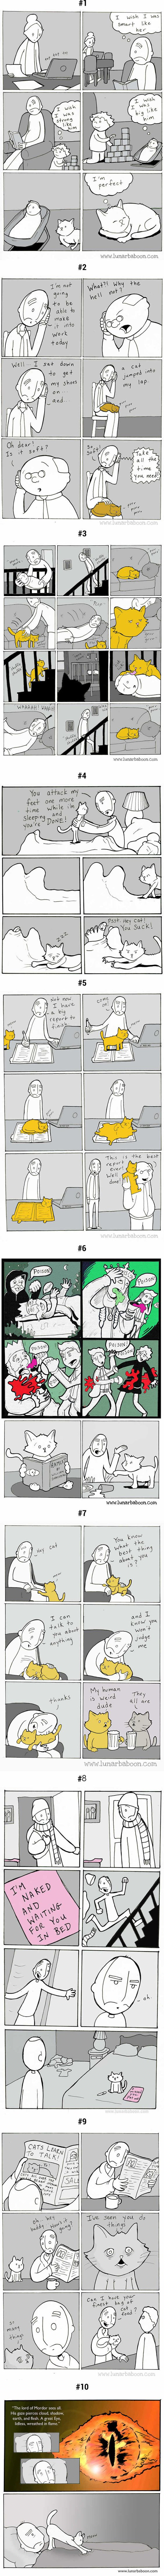 10 Comics tell what a cat person's life is like - 9GAG